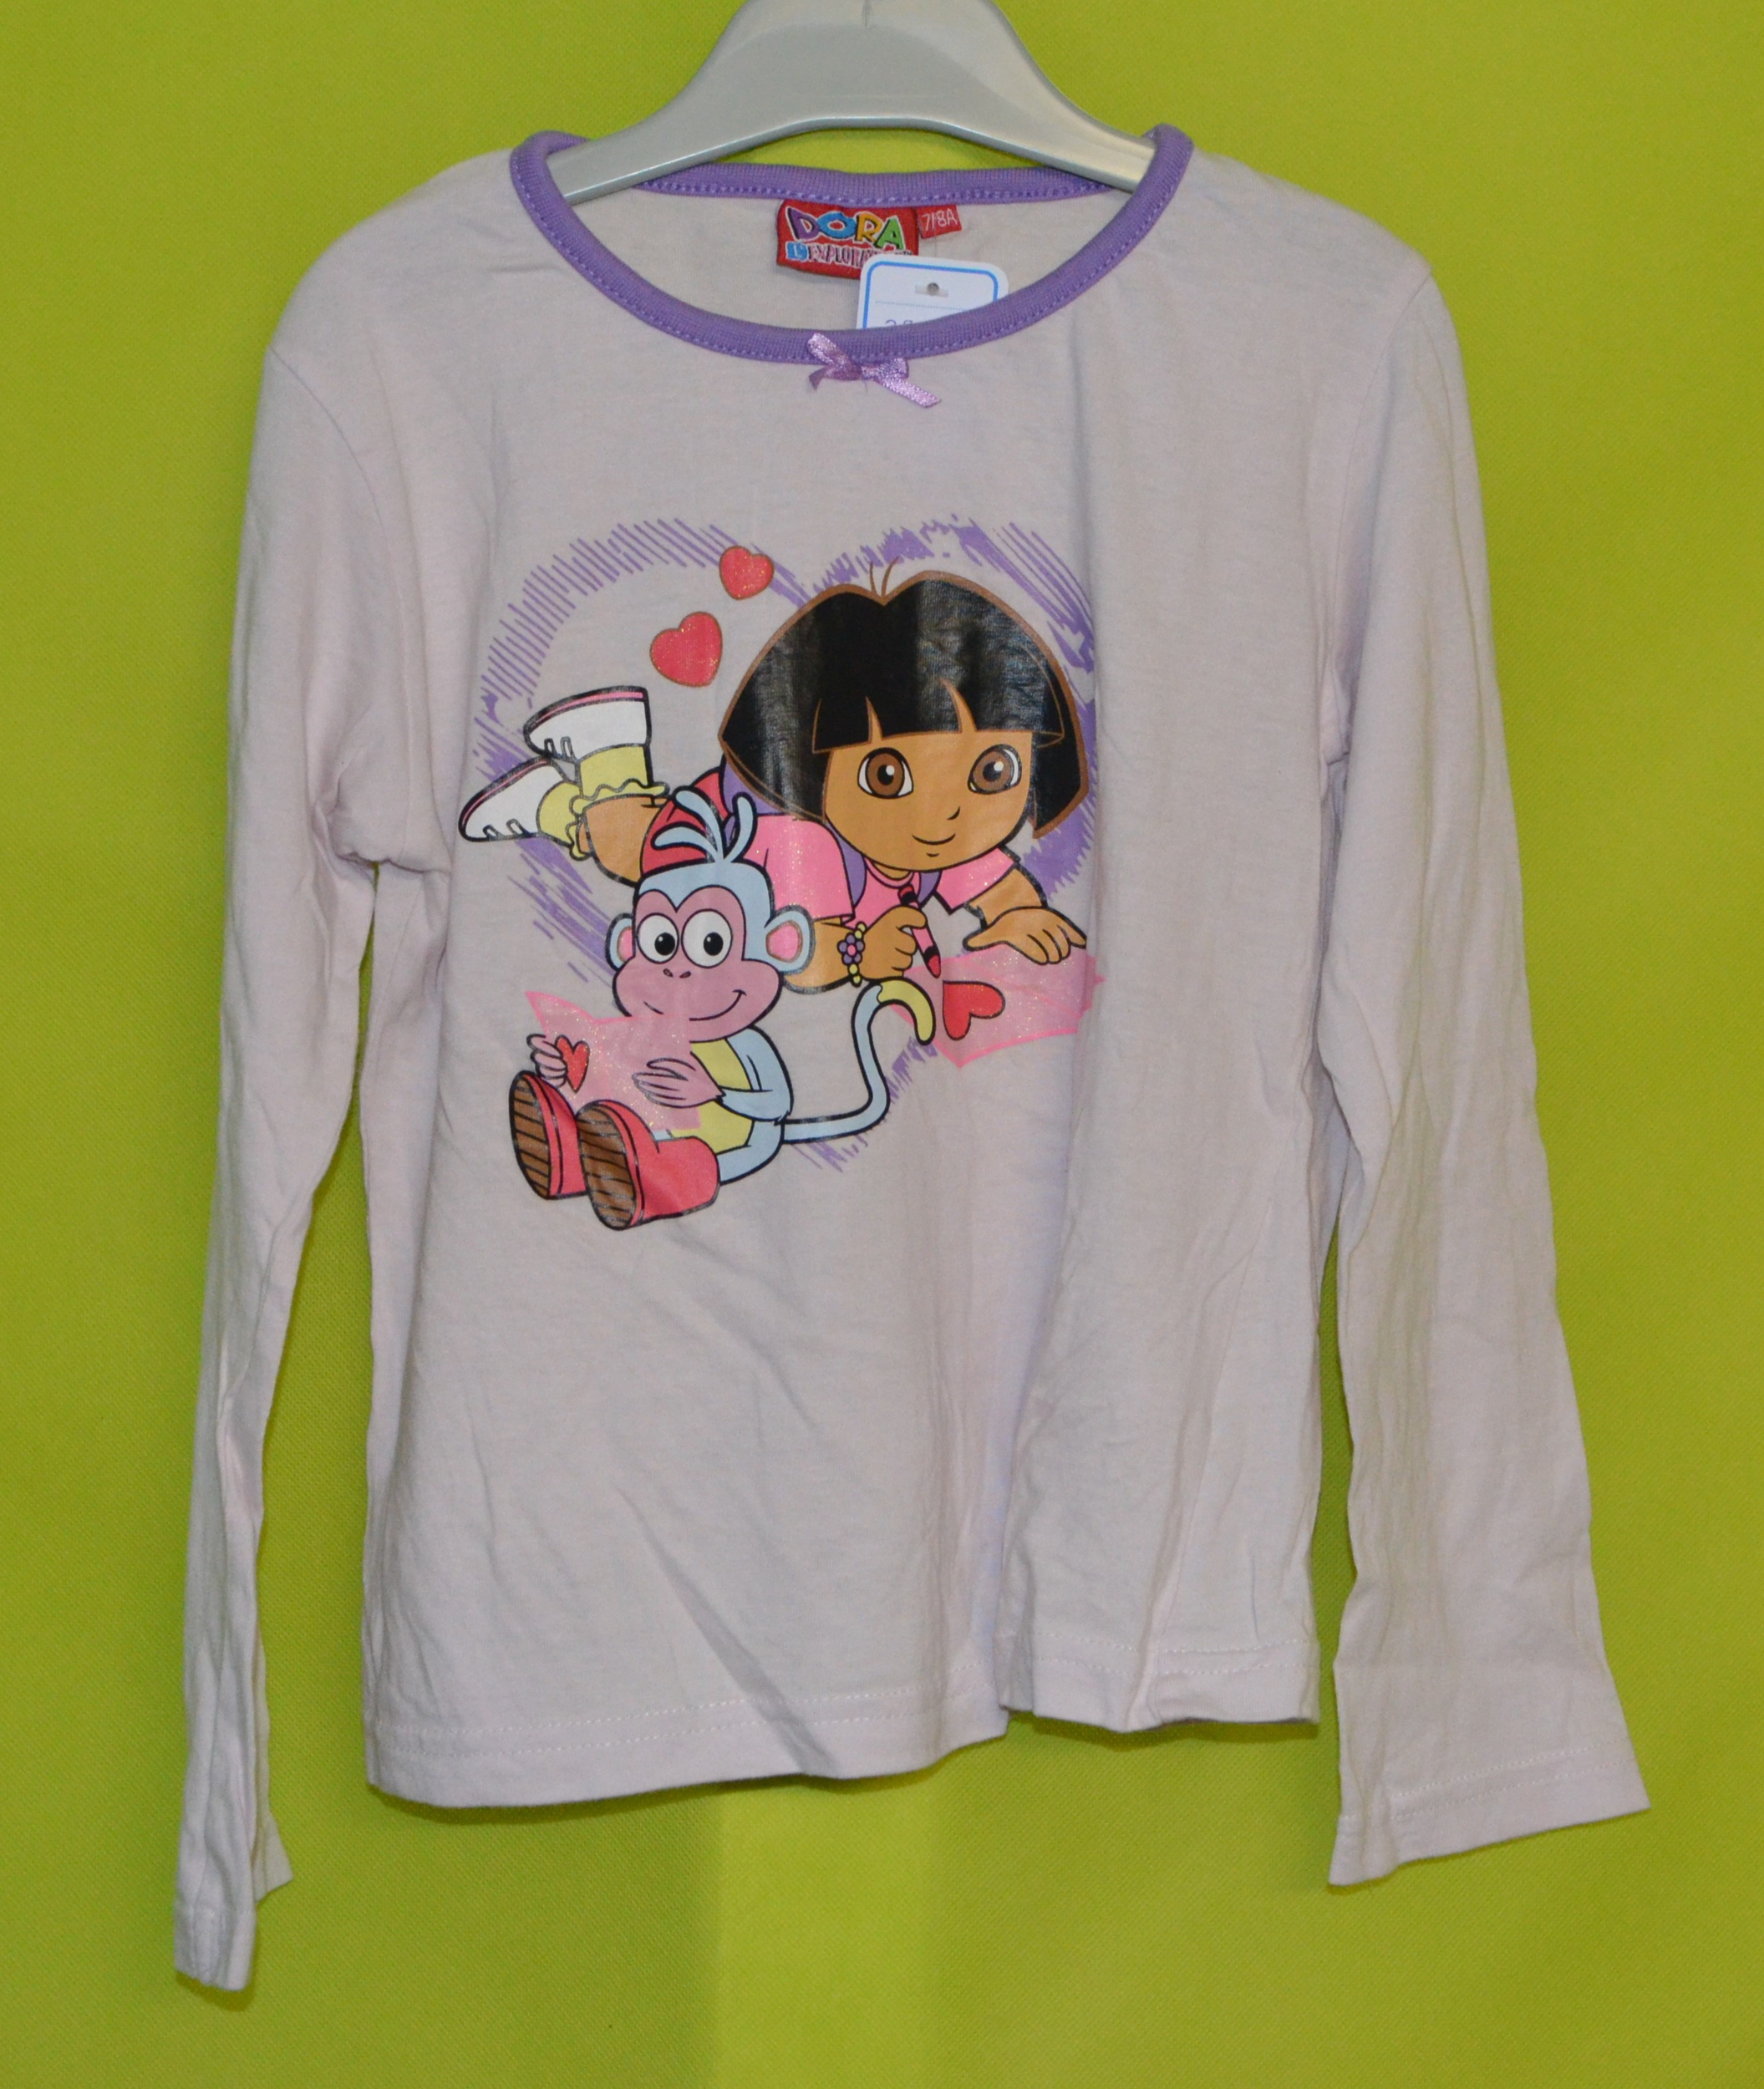 tee shirt manches longues 7/8 ans fille rose dora l\'exploratrice occasion